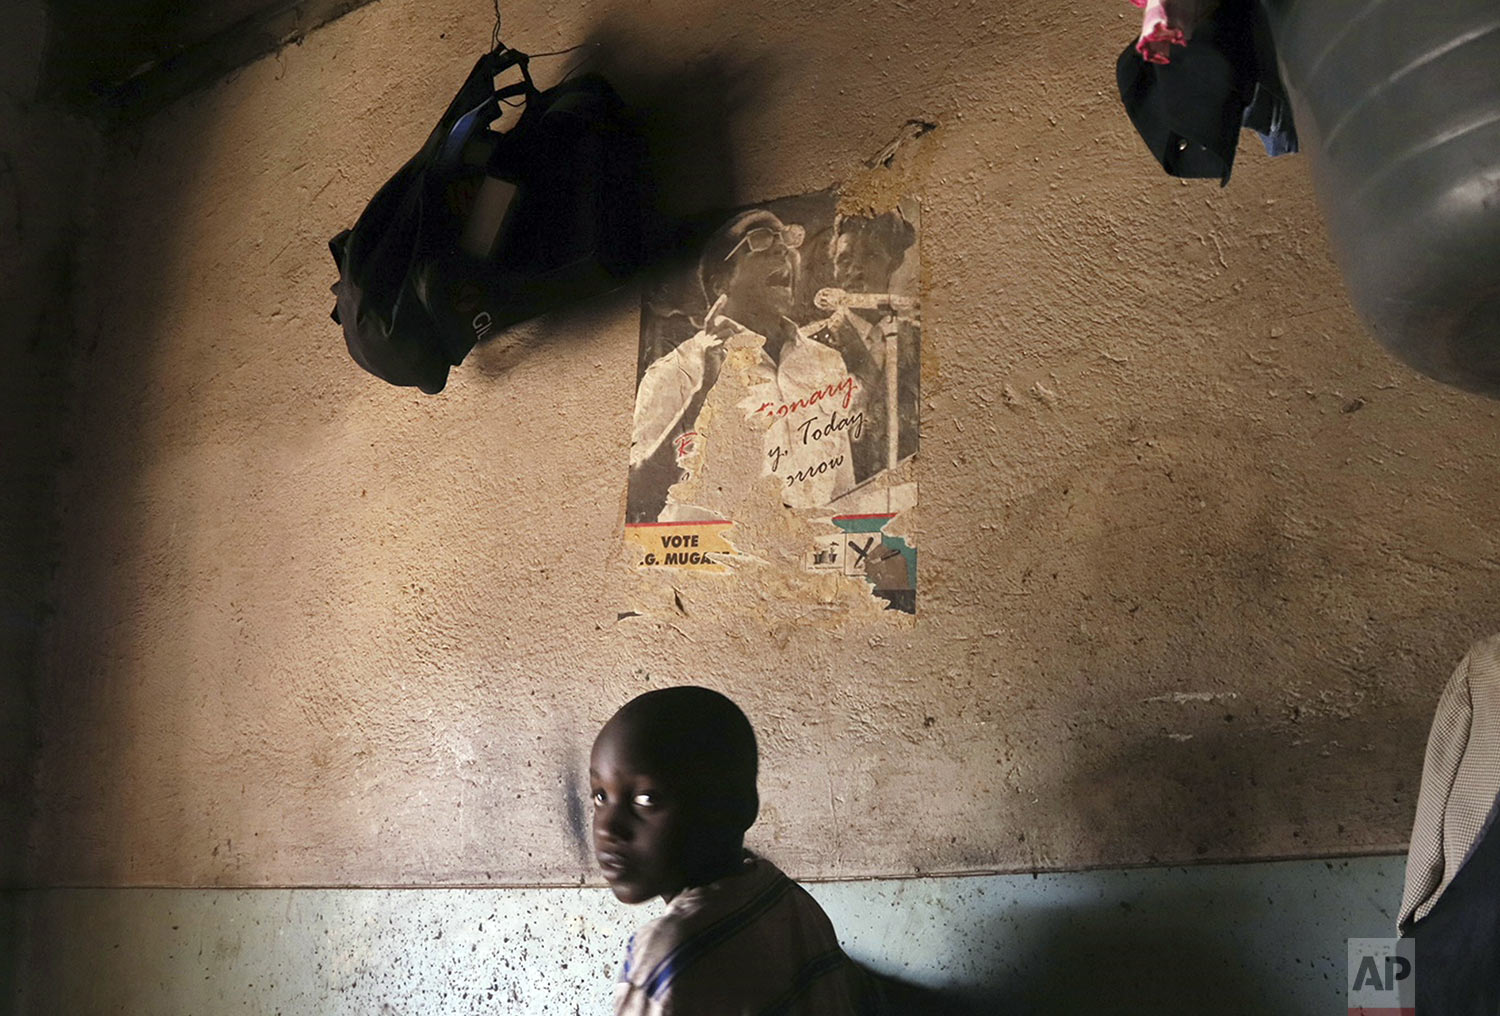 A young child passes by an old torn poster of former Zimbabwean President Robert Mugabe in a building in Harare Friday, Sept. 6, 2019. Mugabe, the former leader of Zimbabwe forced to resign in 2017 after a 37-year rule whose early promise was eroded by economic turmoil, disputed elections and human rights violations, has died. He was 95. (AP Photo)